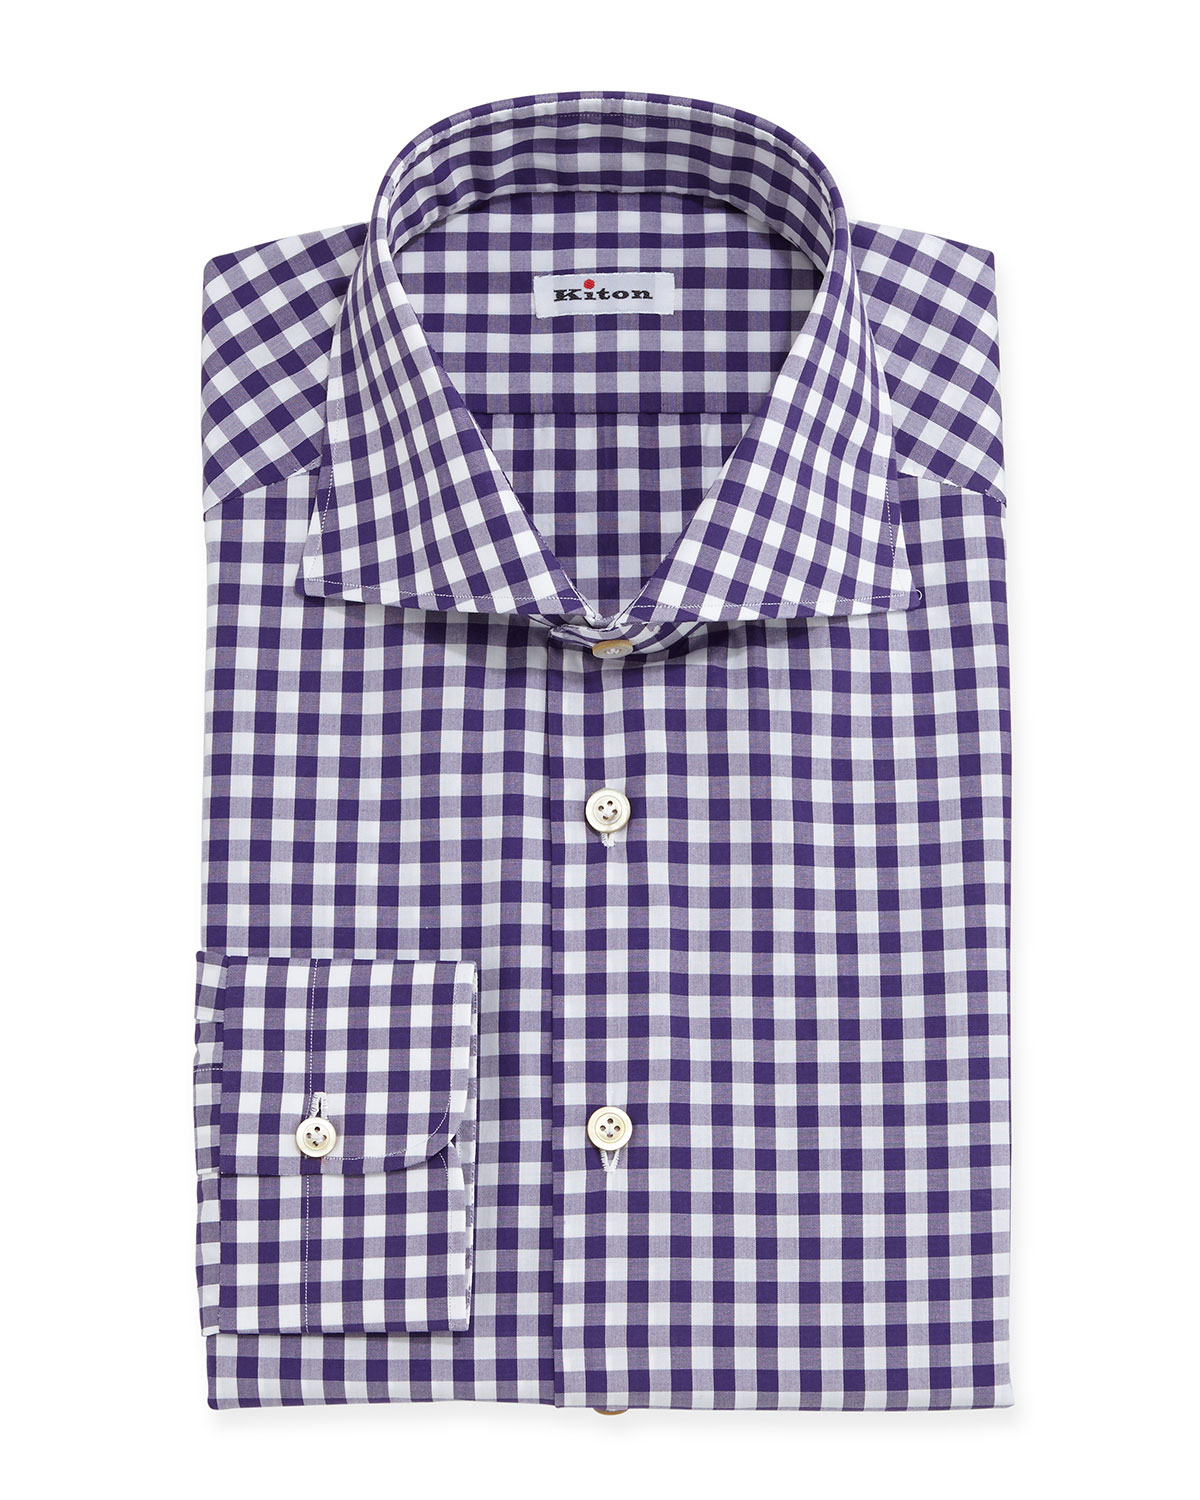 Lyst kiton gingham check dress shirt in purple for men for Men s purple gingham shirt